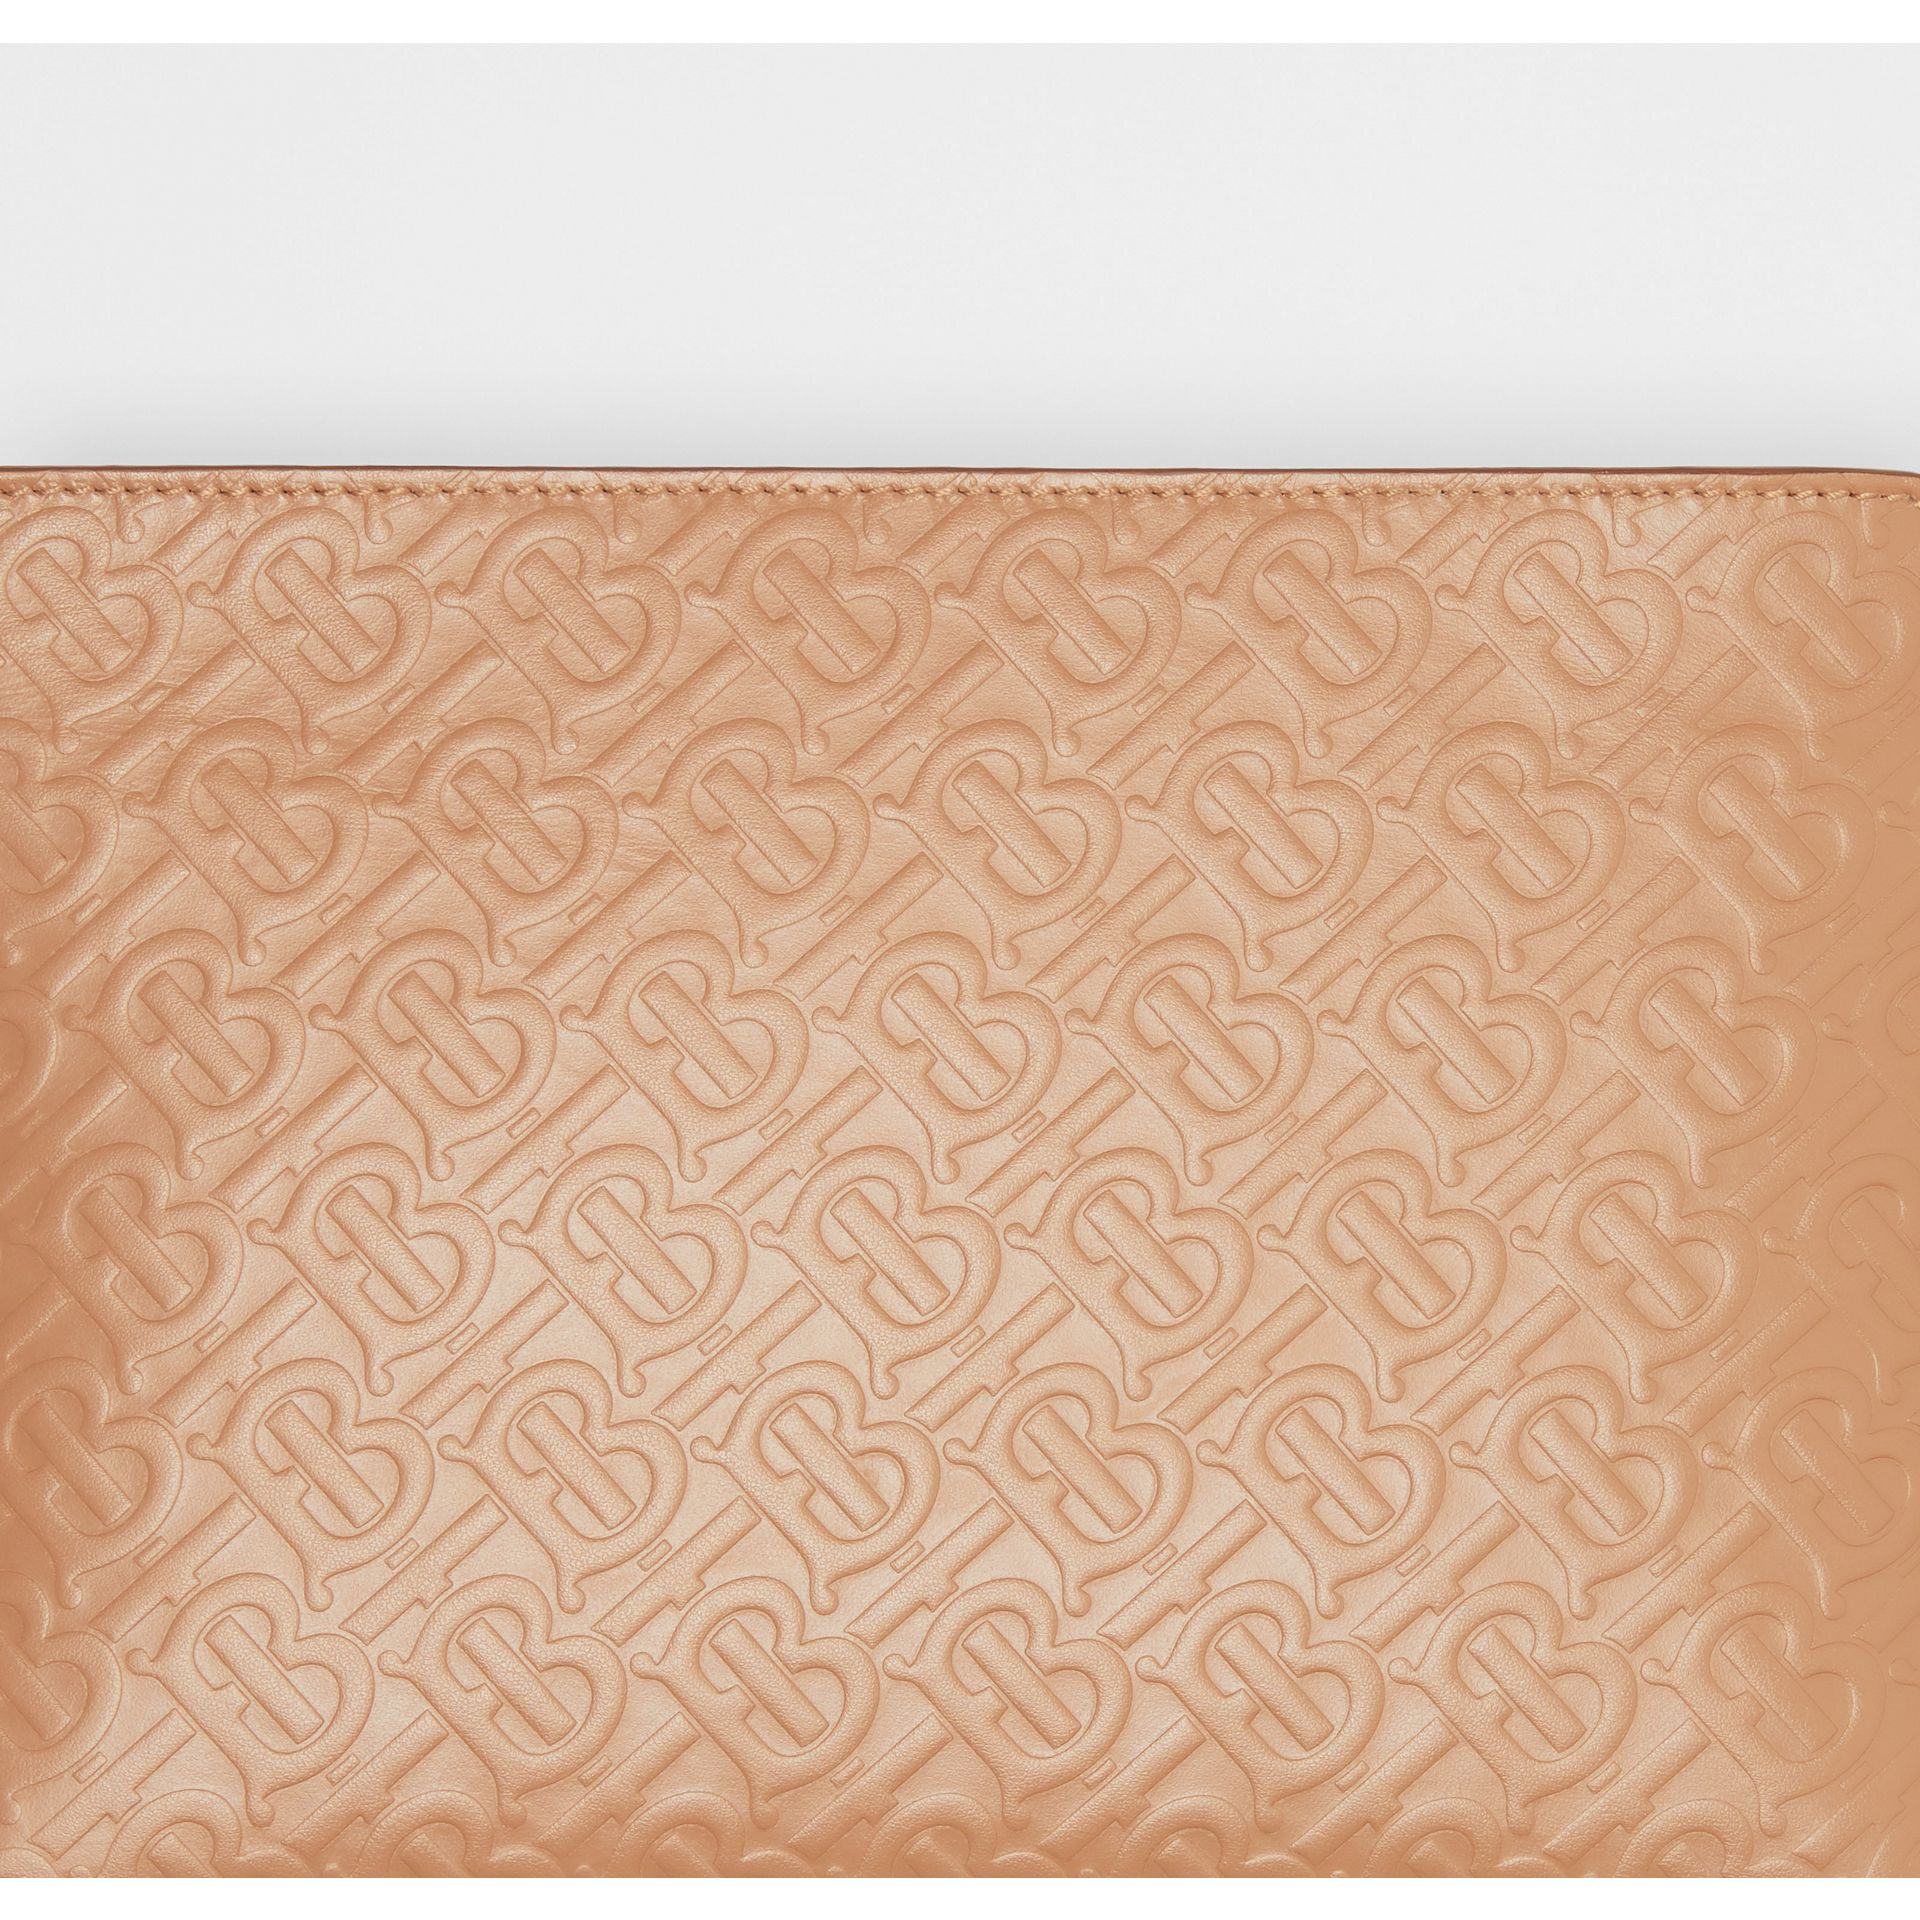 Medium Monogram Leather Clutch in Light Camel - Women | Burberry - gallery image 1